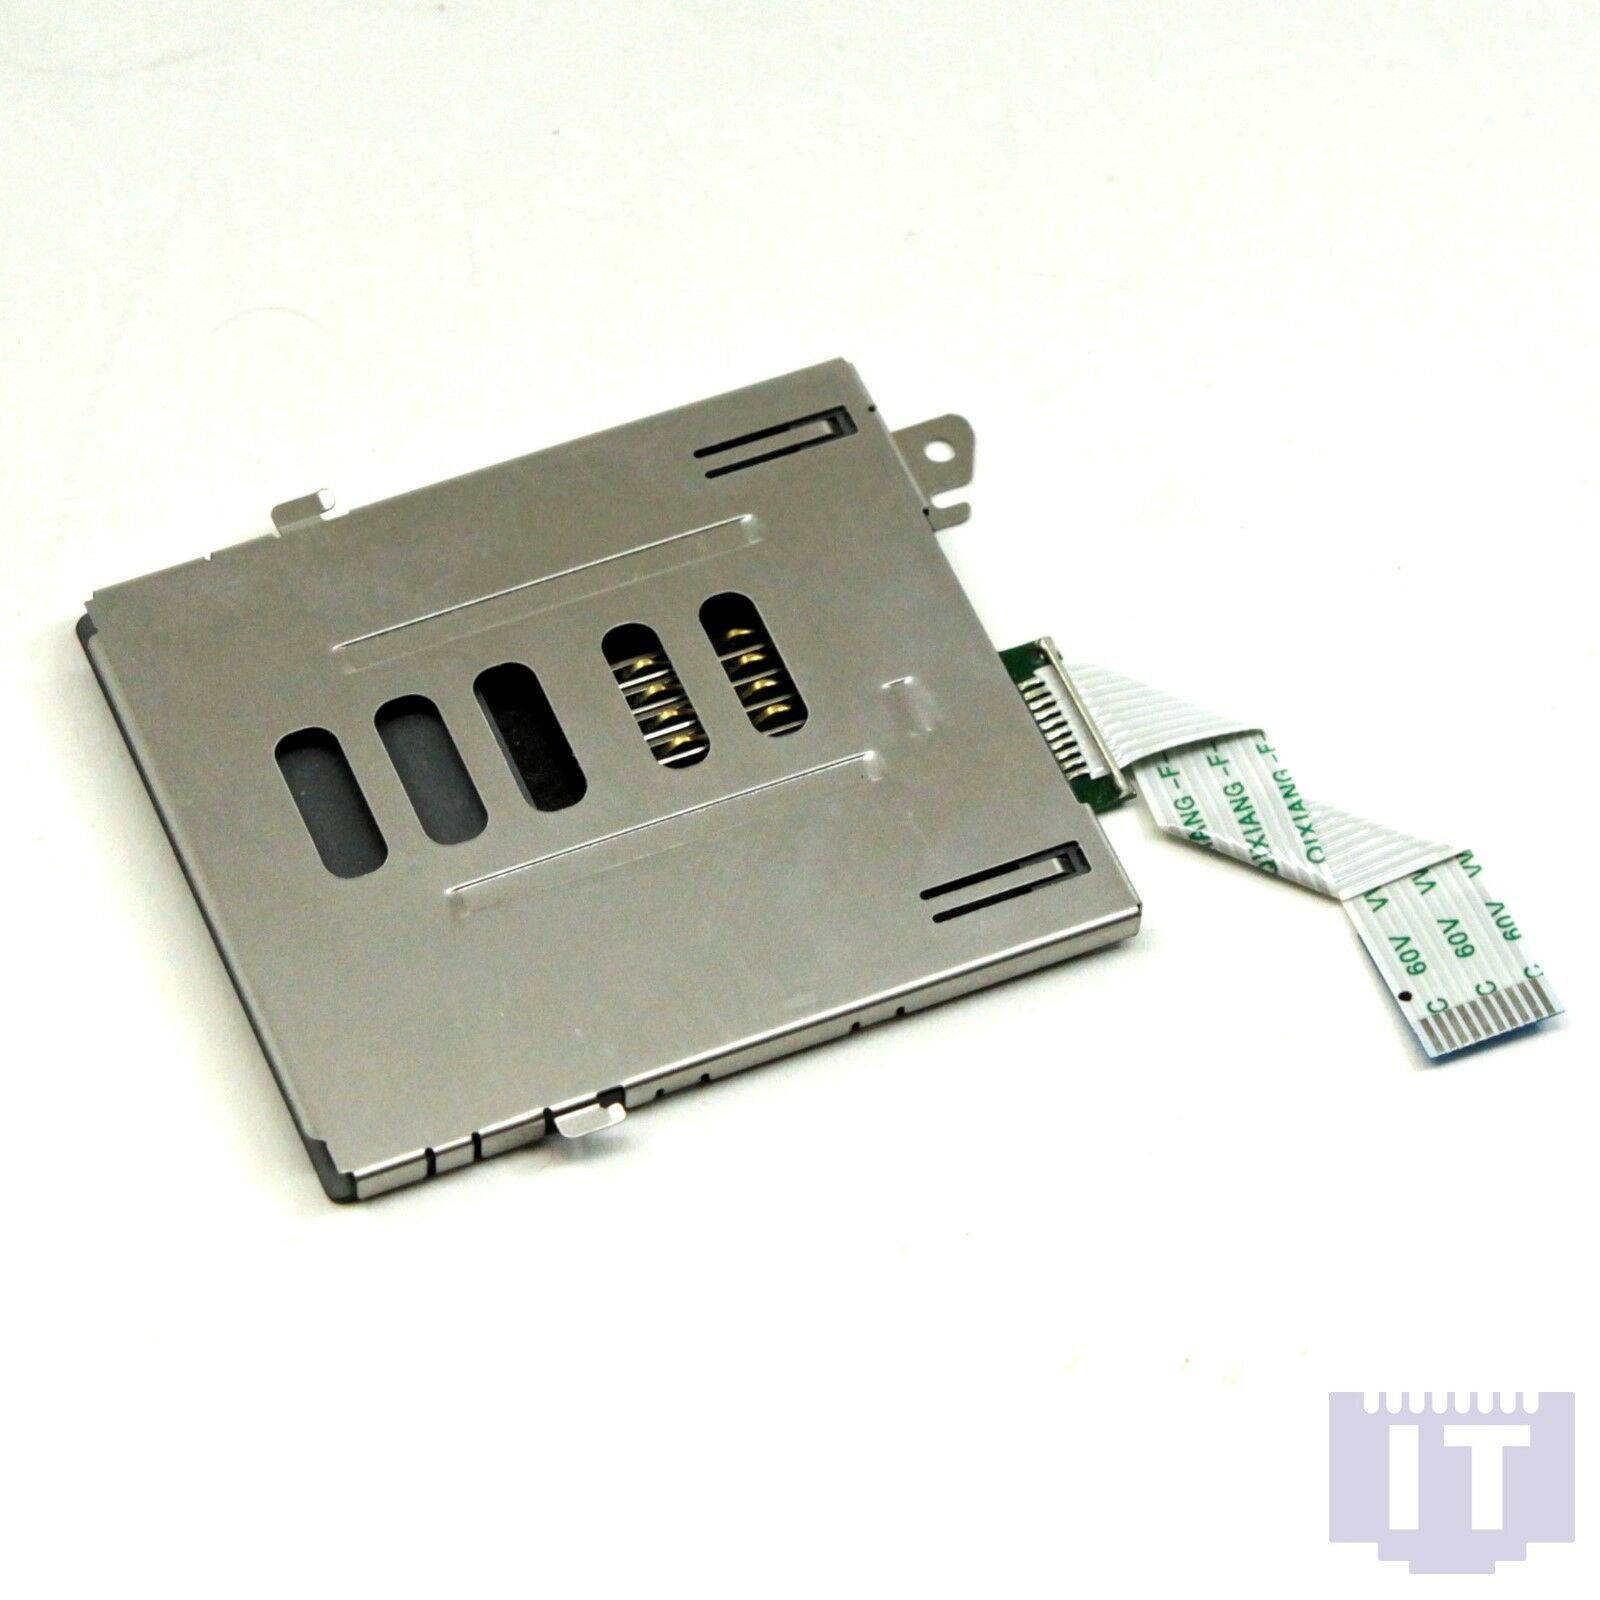 dell-latitude-e6420-laptop-replacement-memory-card-reader-w-cable-1fgh6